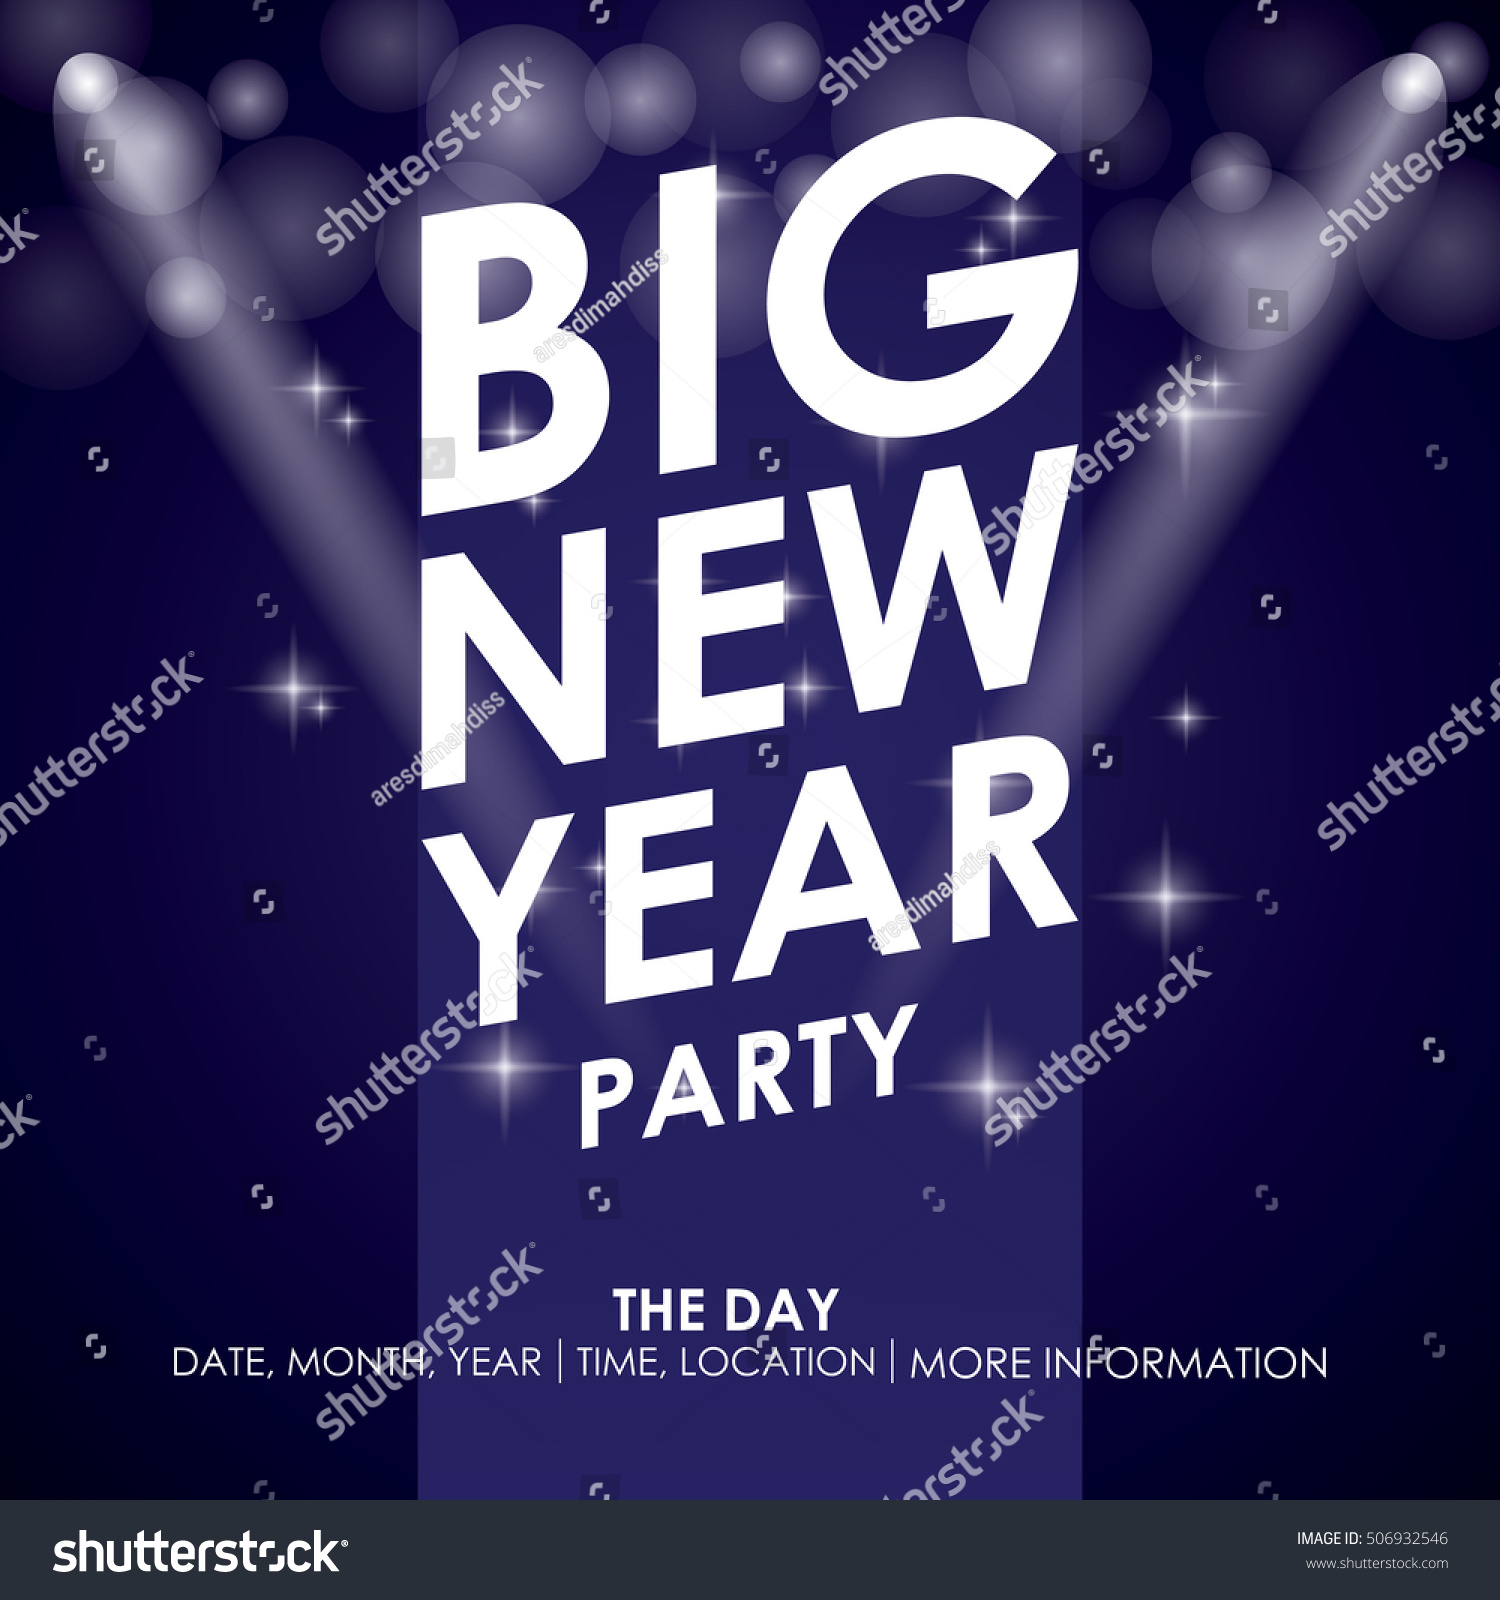 new year party poster template stock vector illustration 506932546 shutterstock